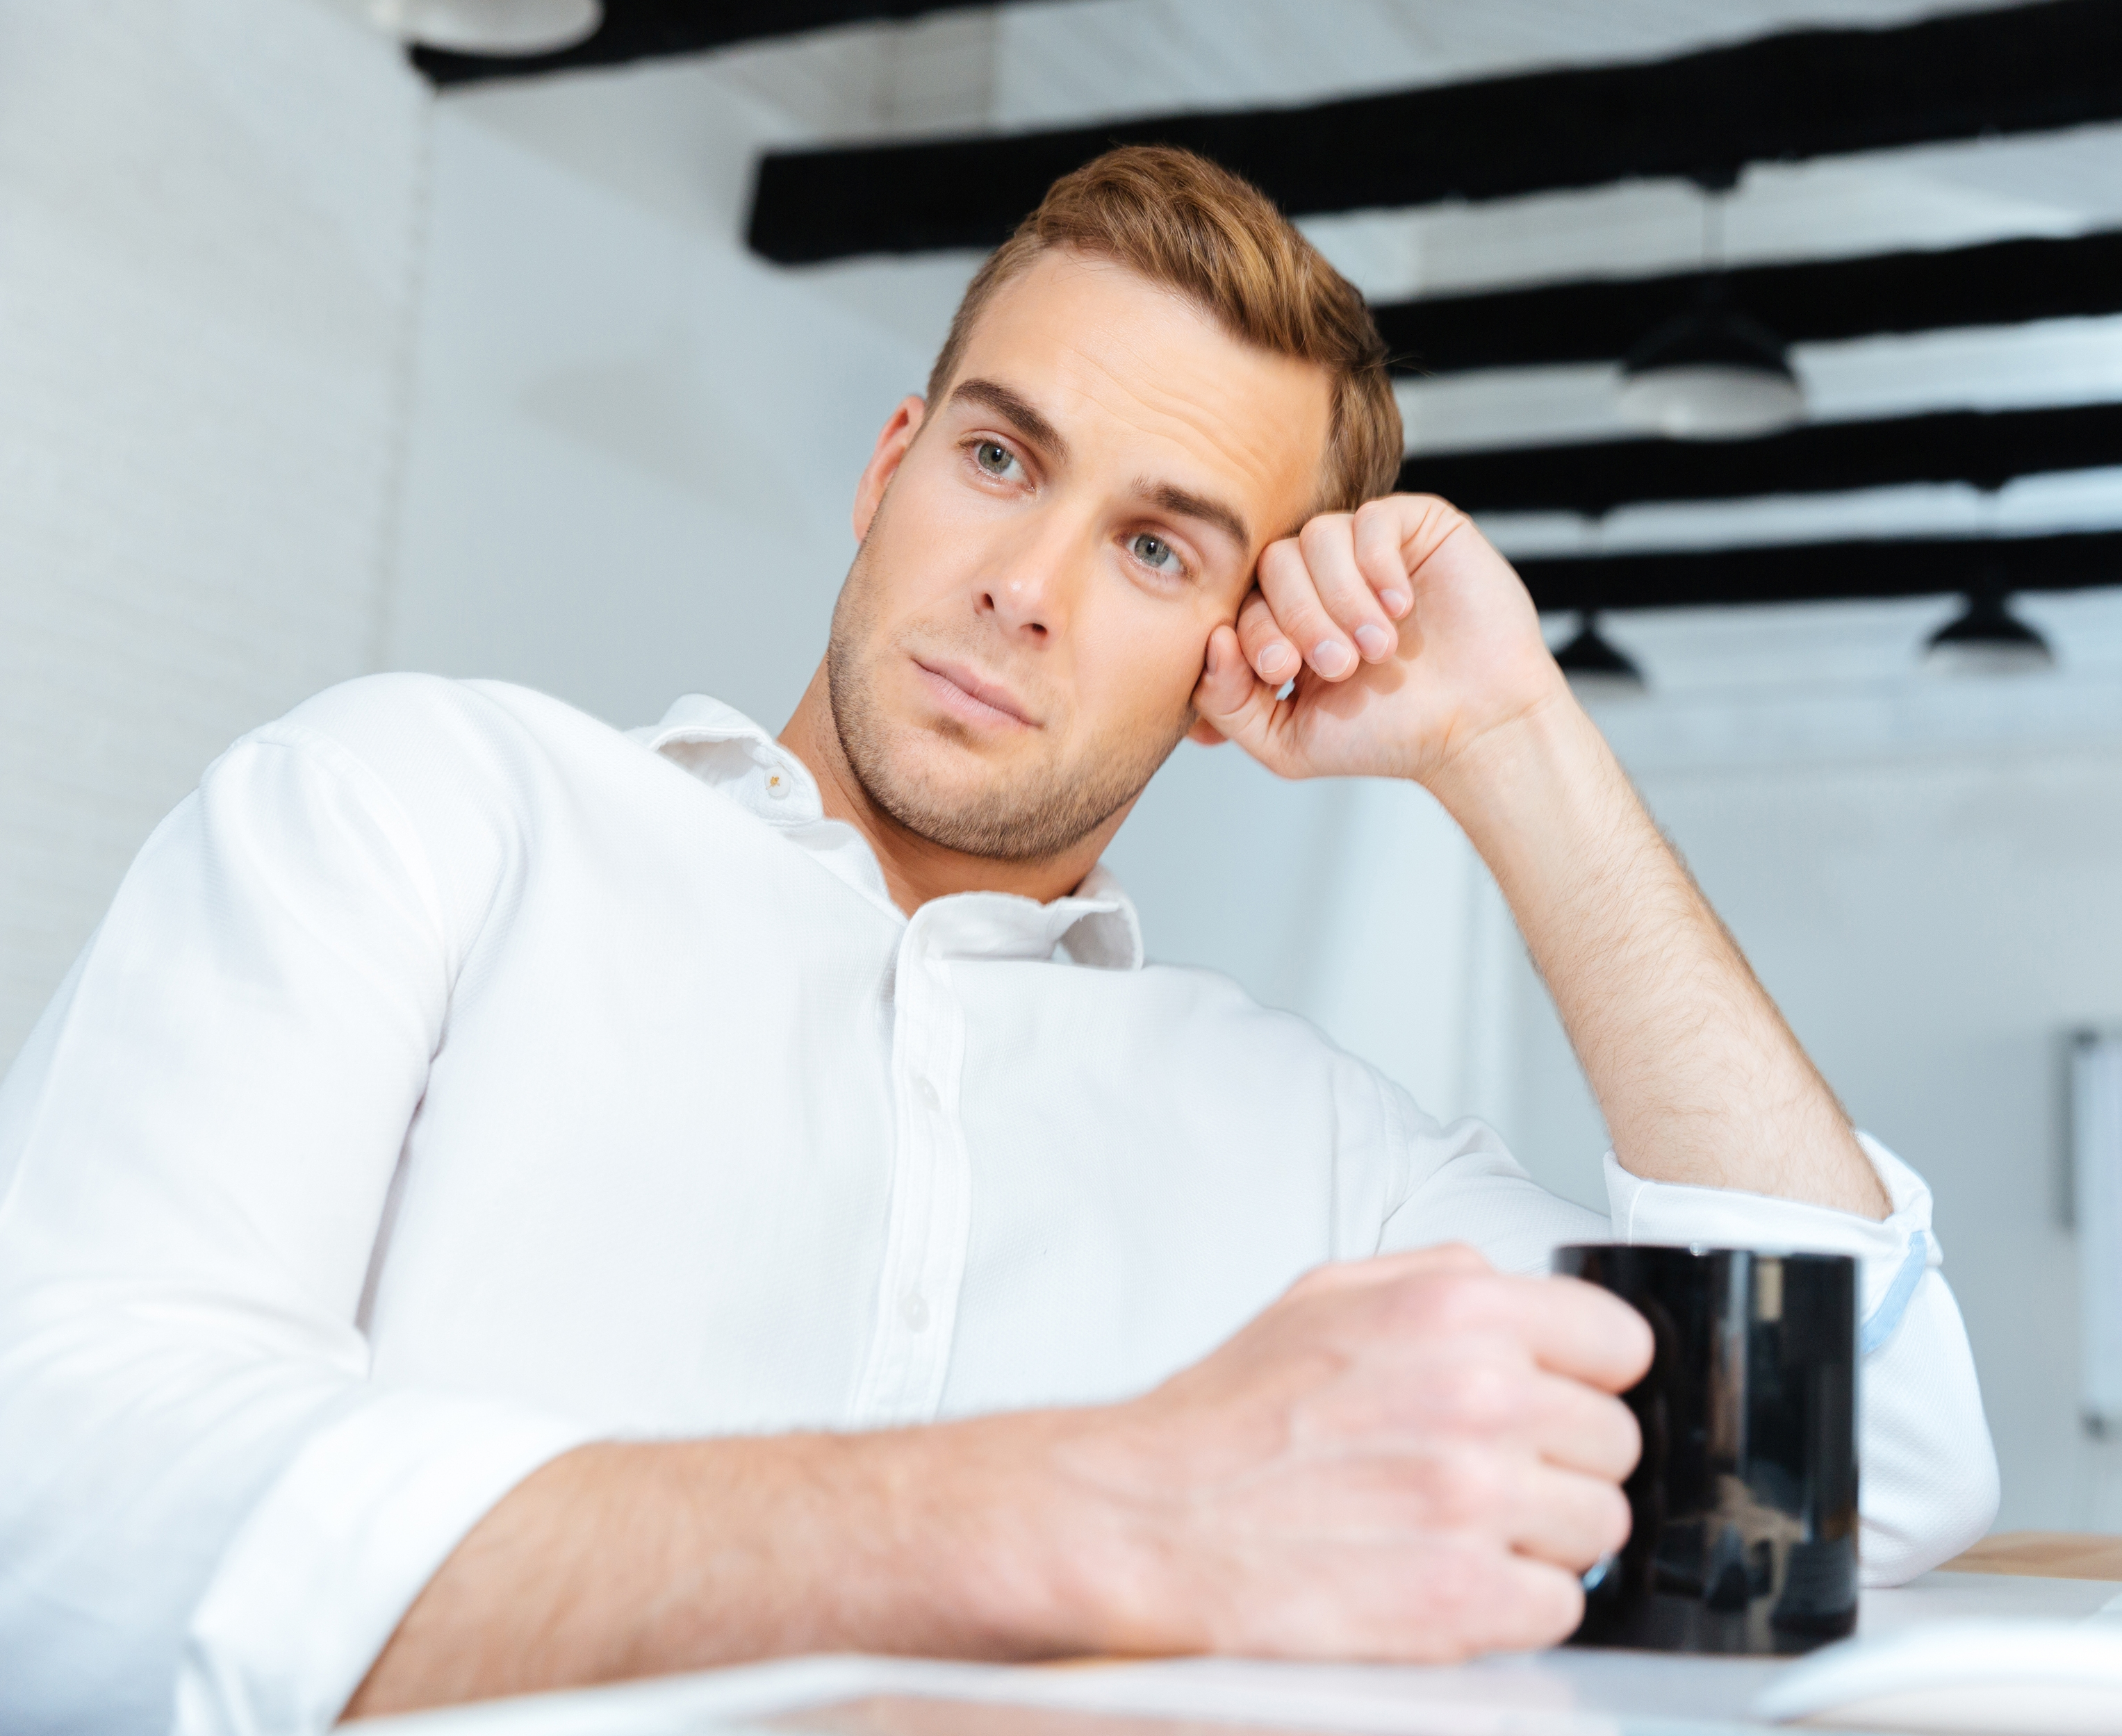 Thoughtful businessman drinking coffee and thinking at workplace